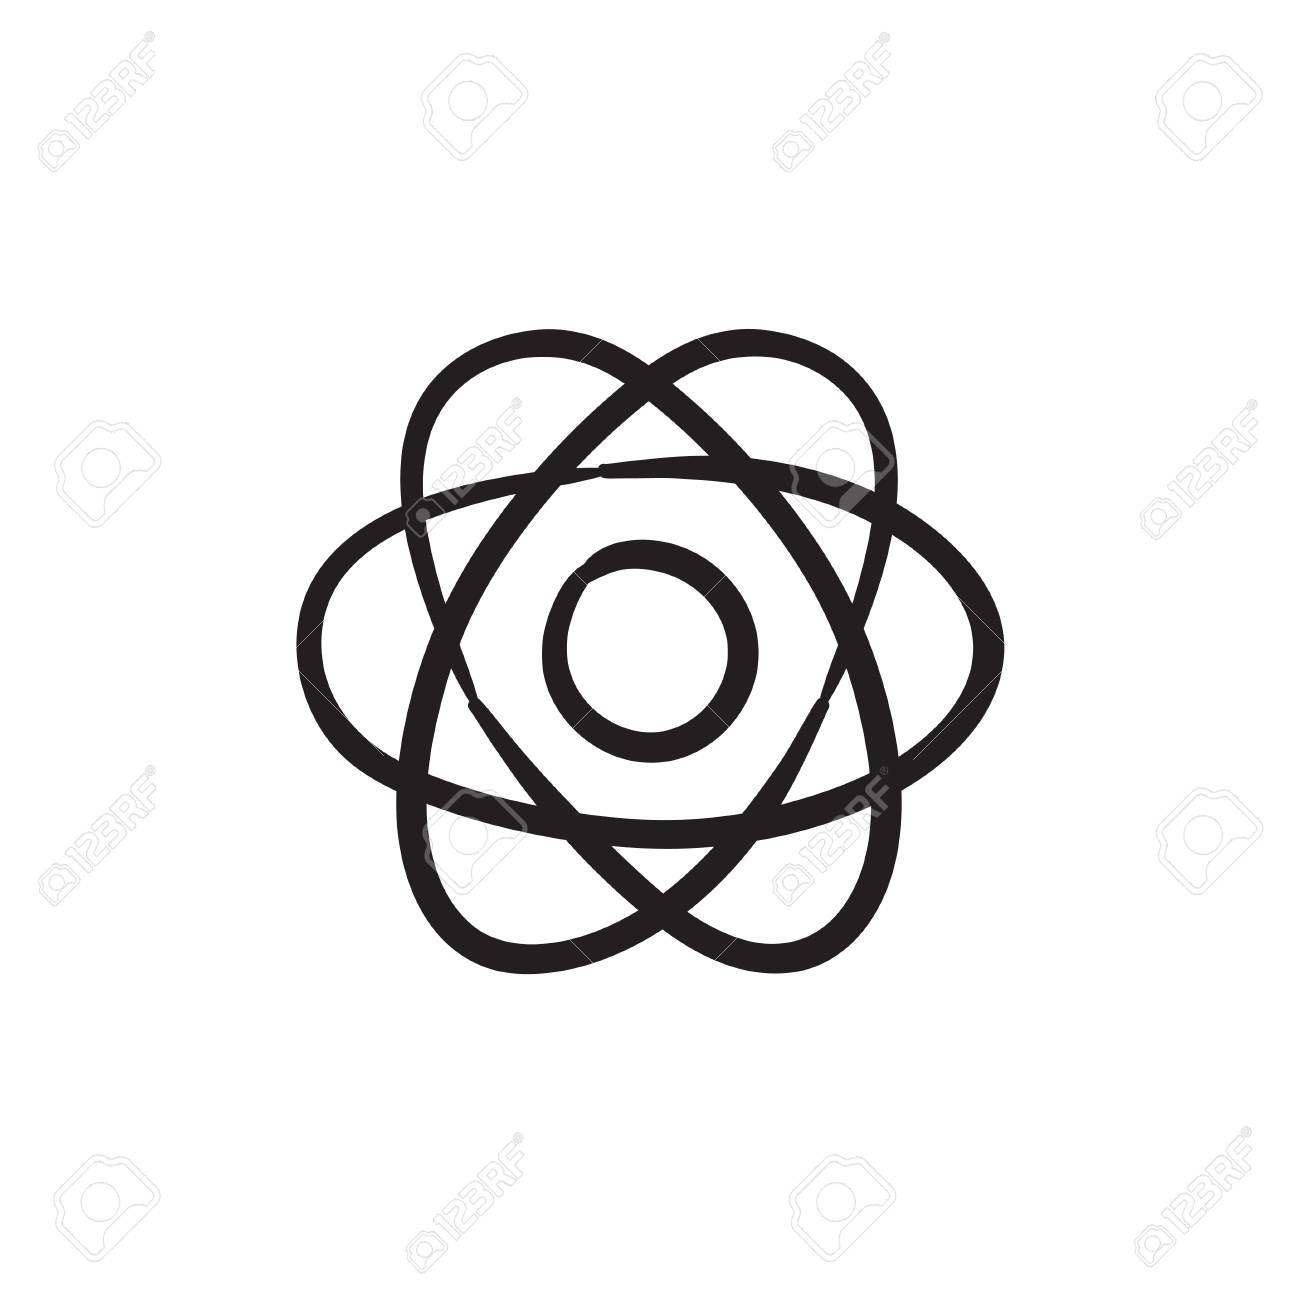 1300x1300 Atom Vector Sketch Icon Isolated On Background. Hand Drawn Atom